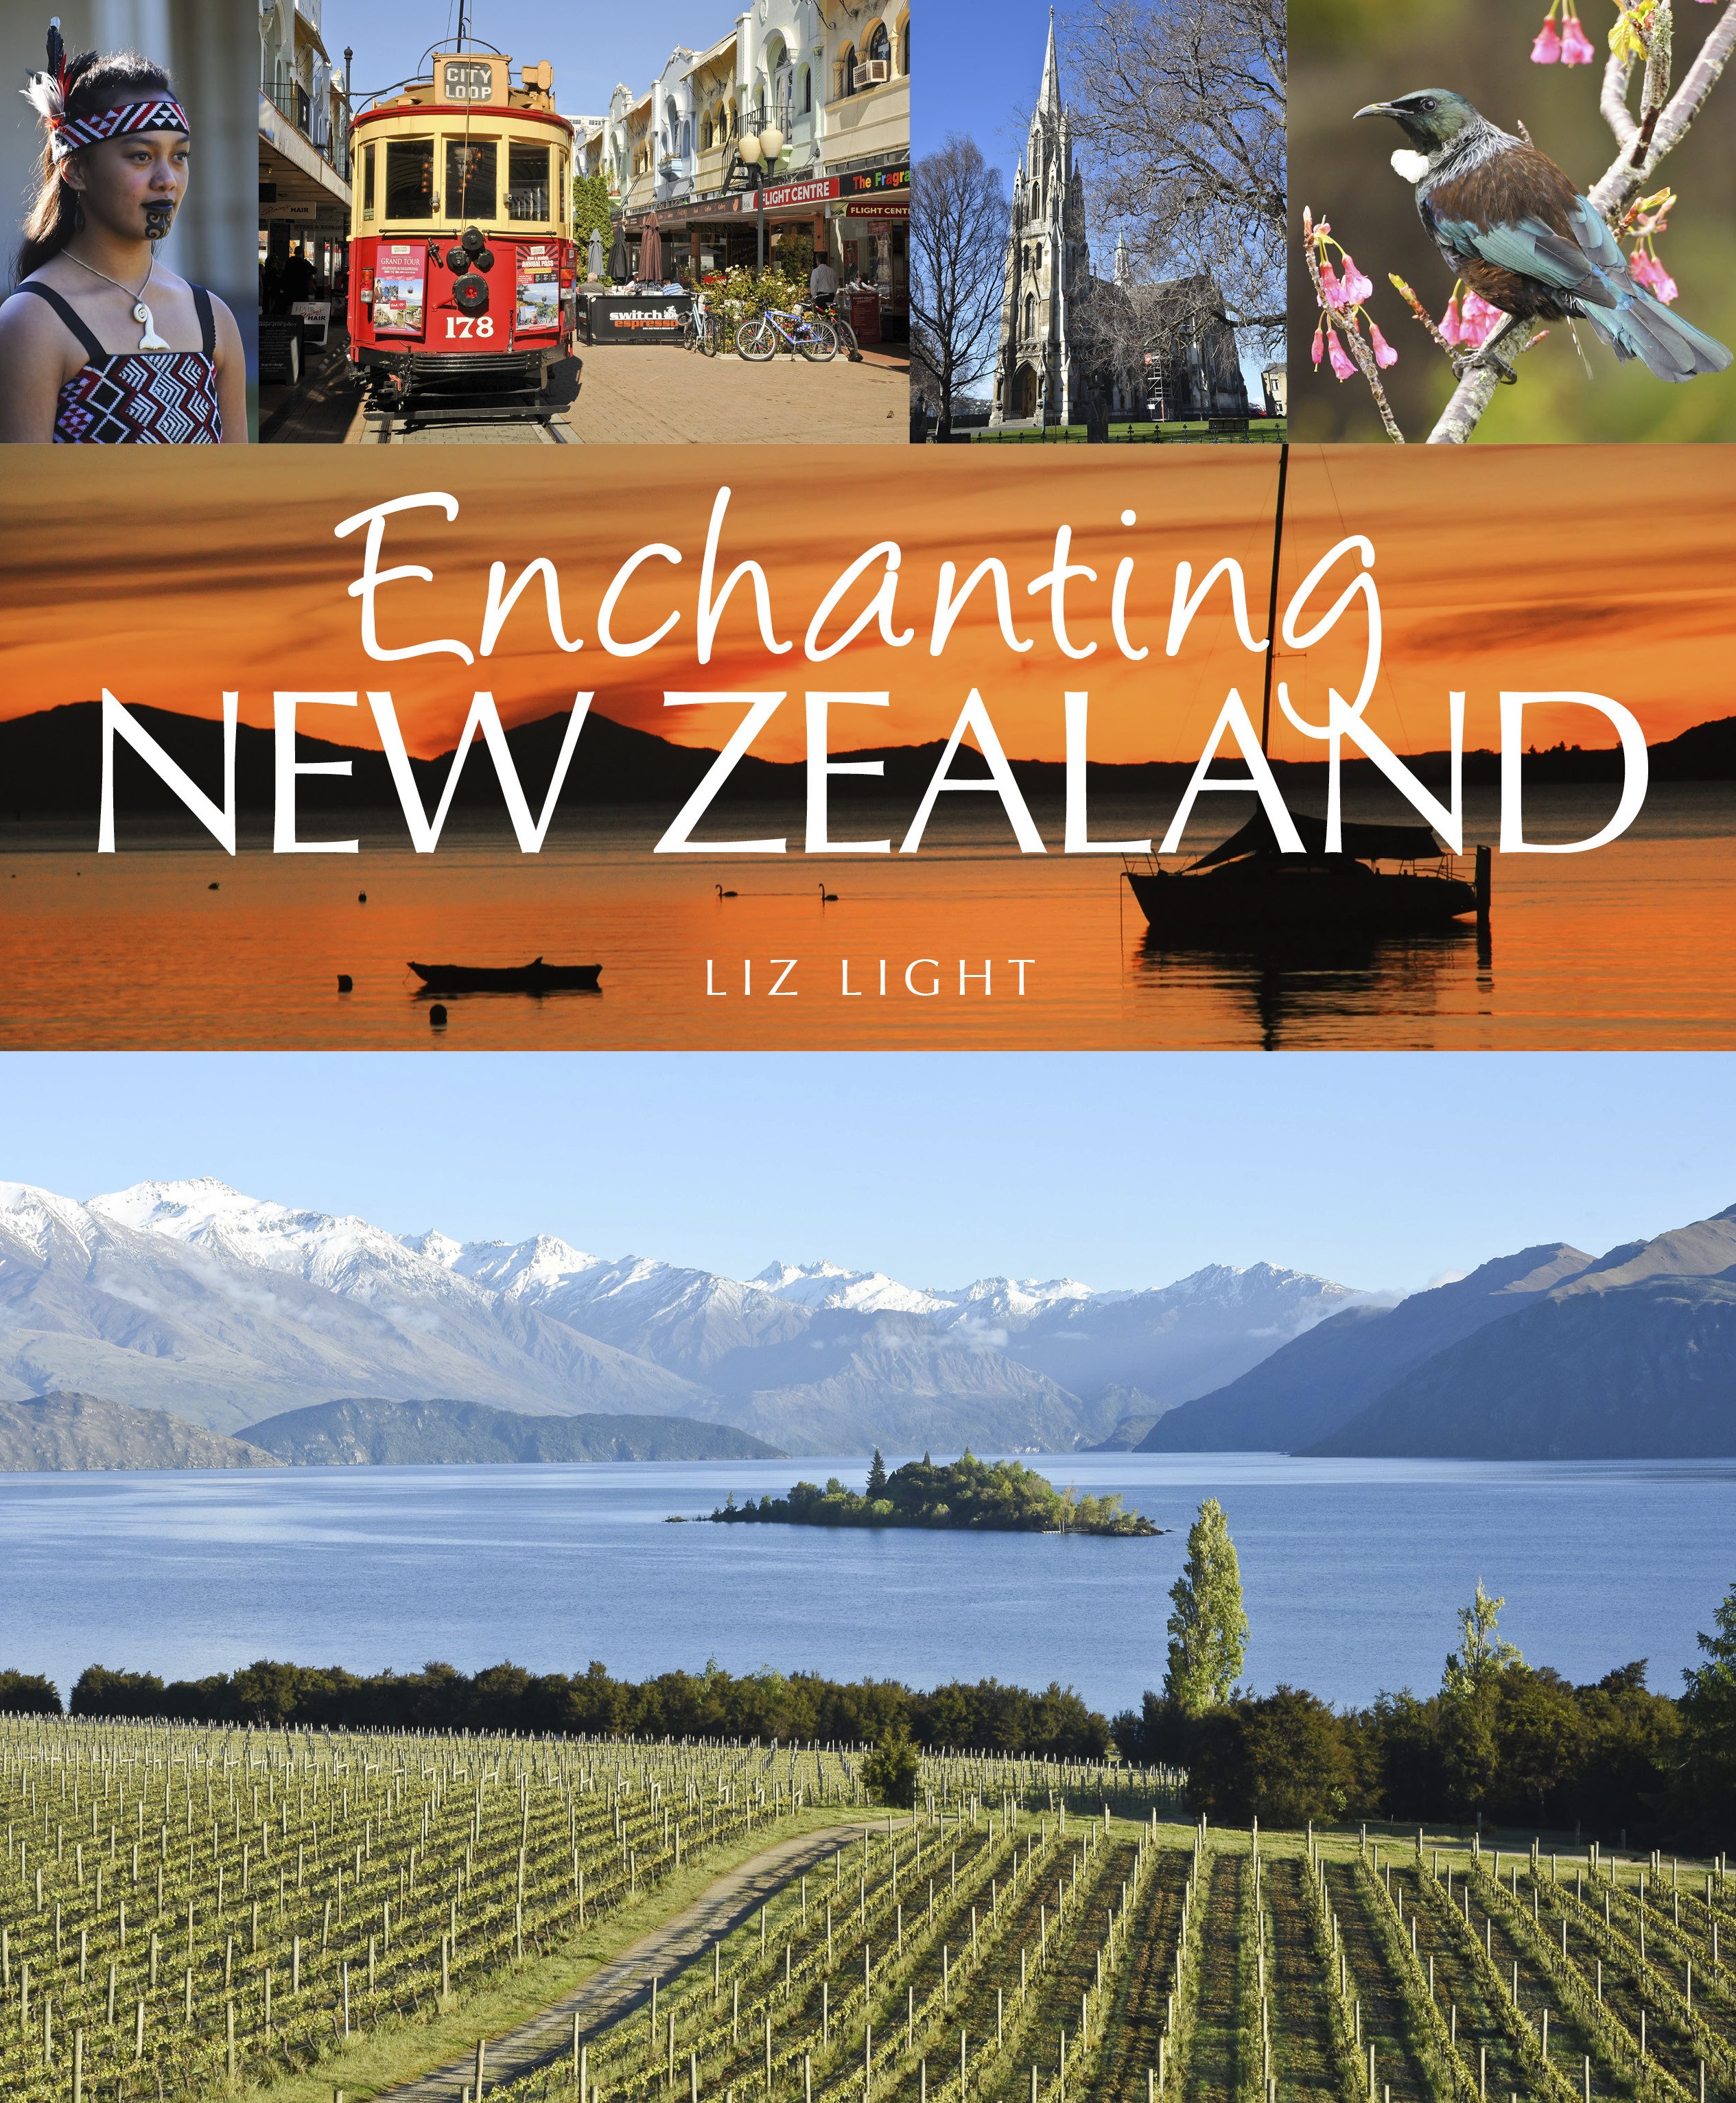 Enchanting New Zealand